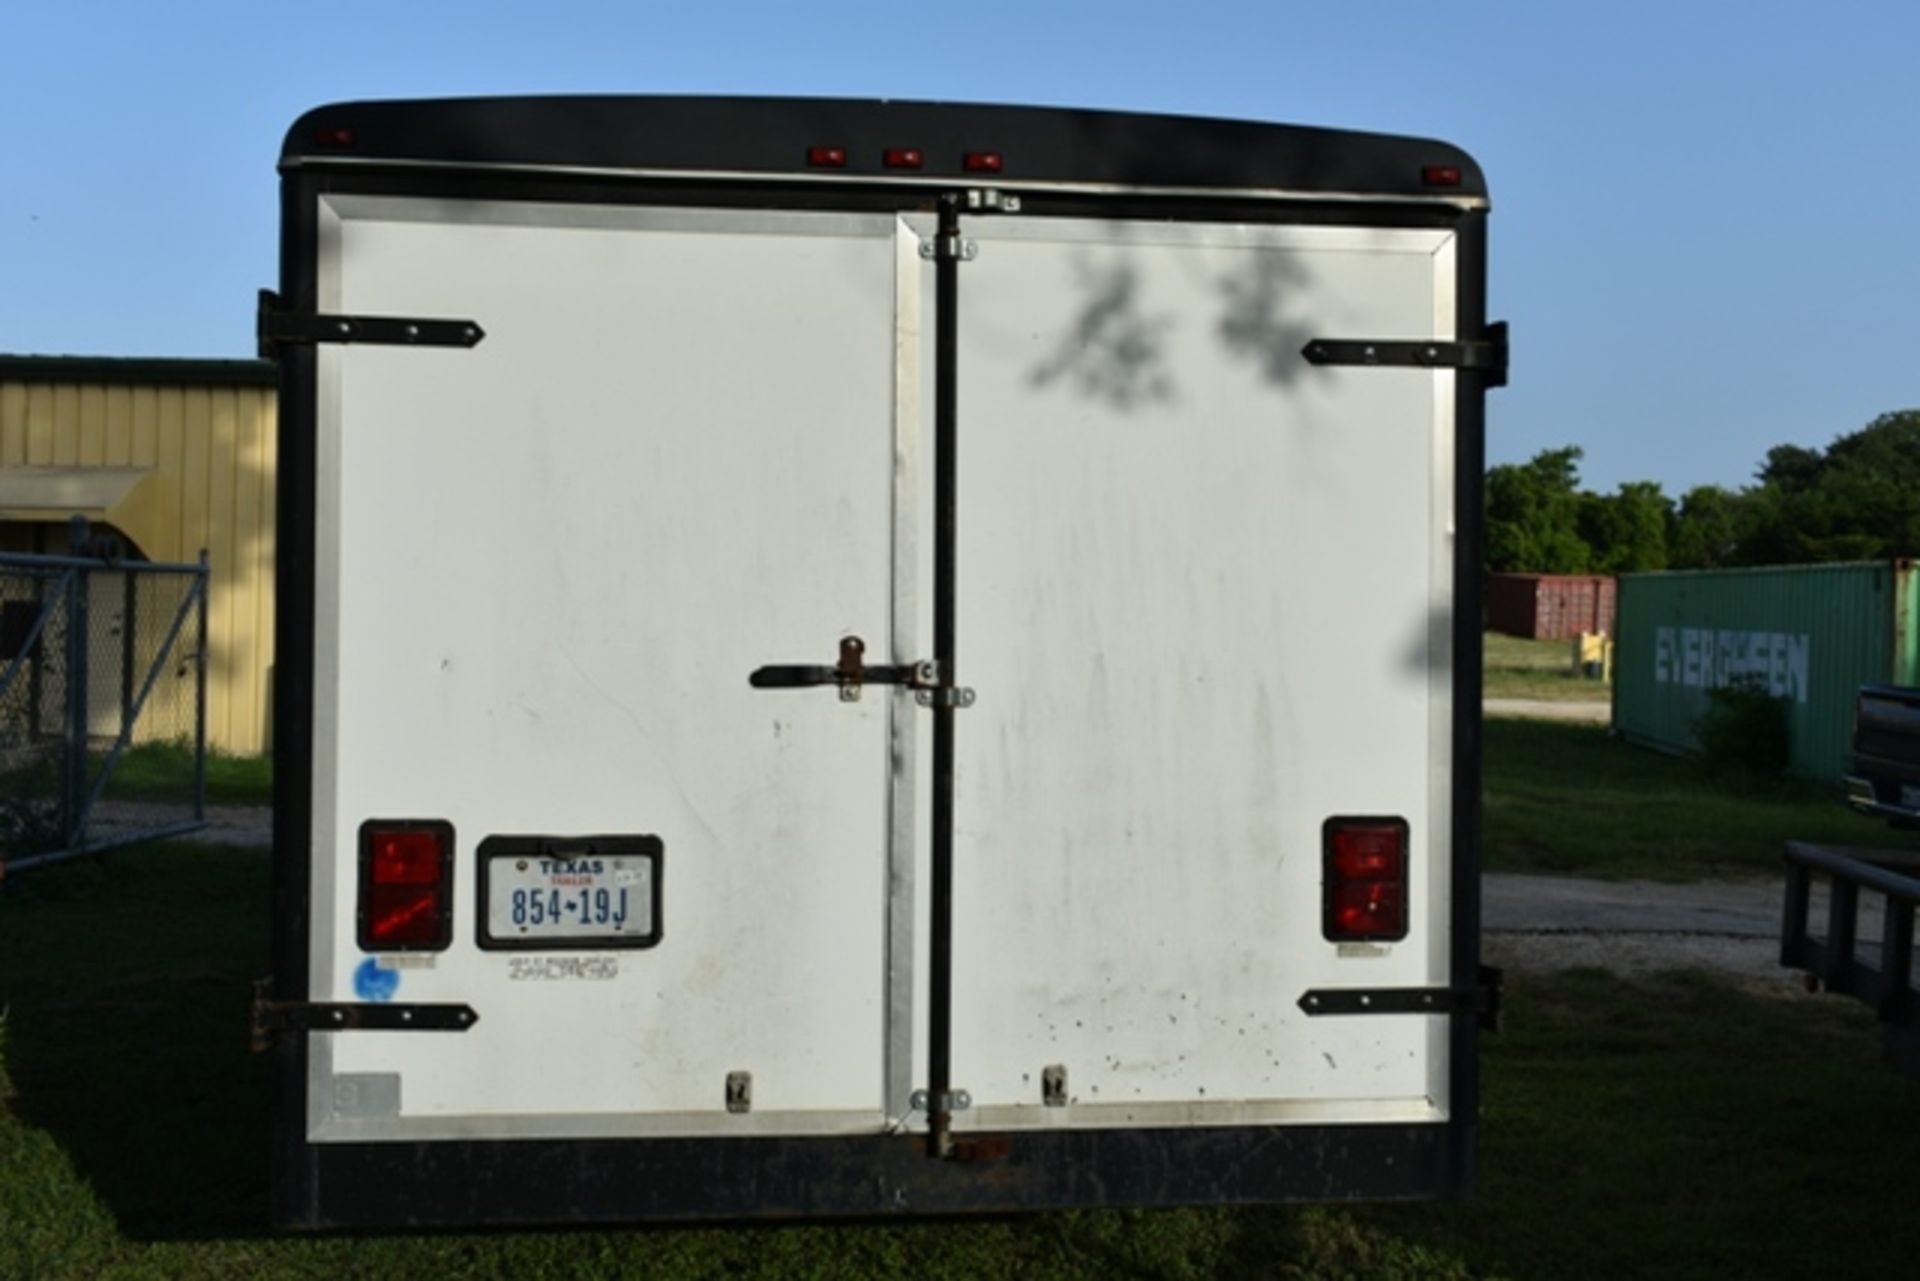 Lot 89 - 1995 WELLS CARGO ENCLOSED TRAILER, APPROX 8' X 20LG